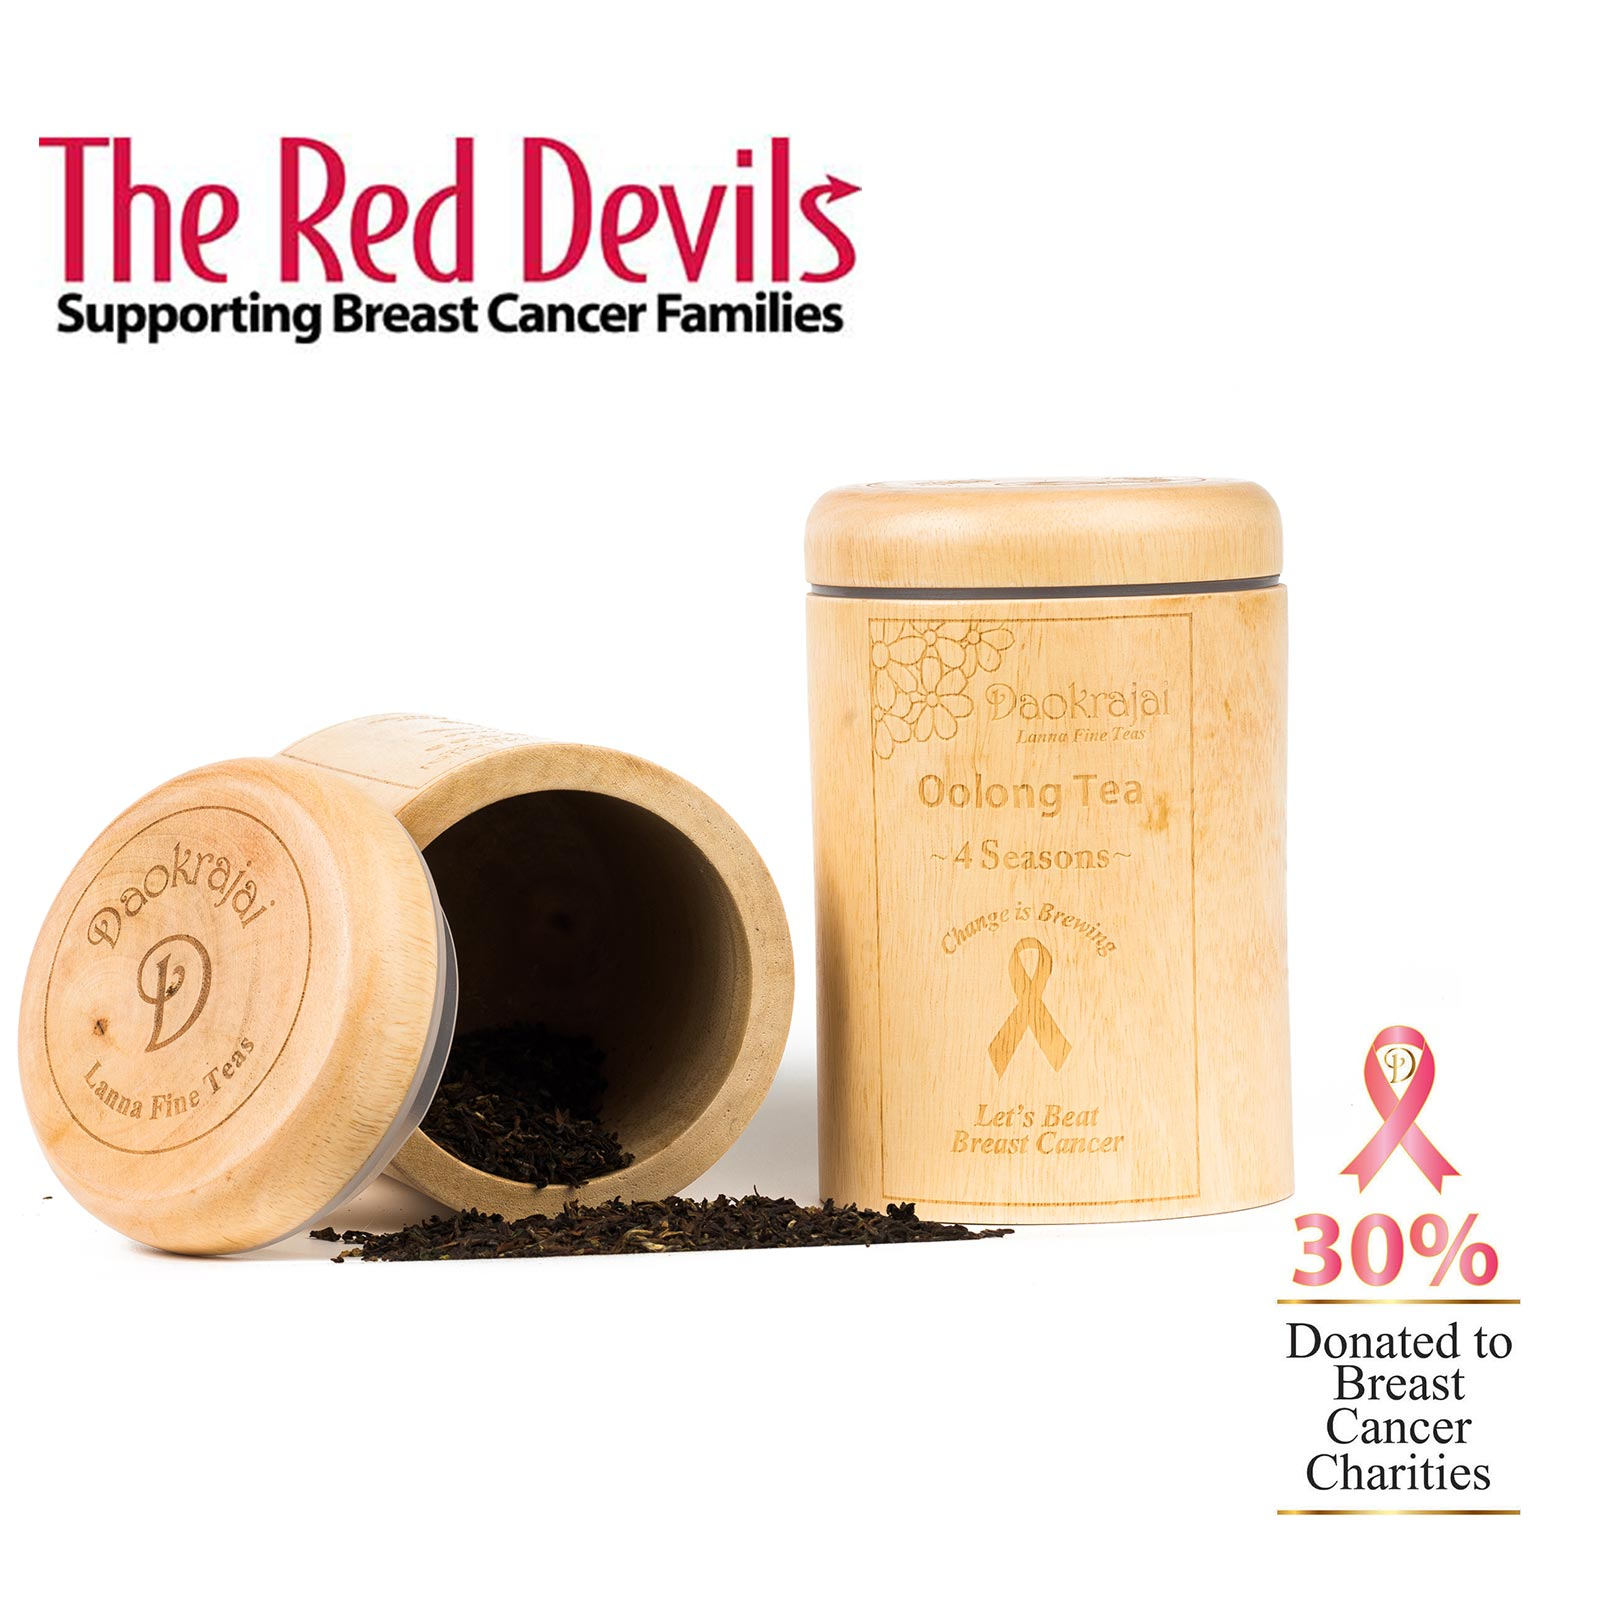 Oolong Tea 4 Seasons - supporting The Red Devils breast cancer charity